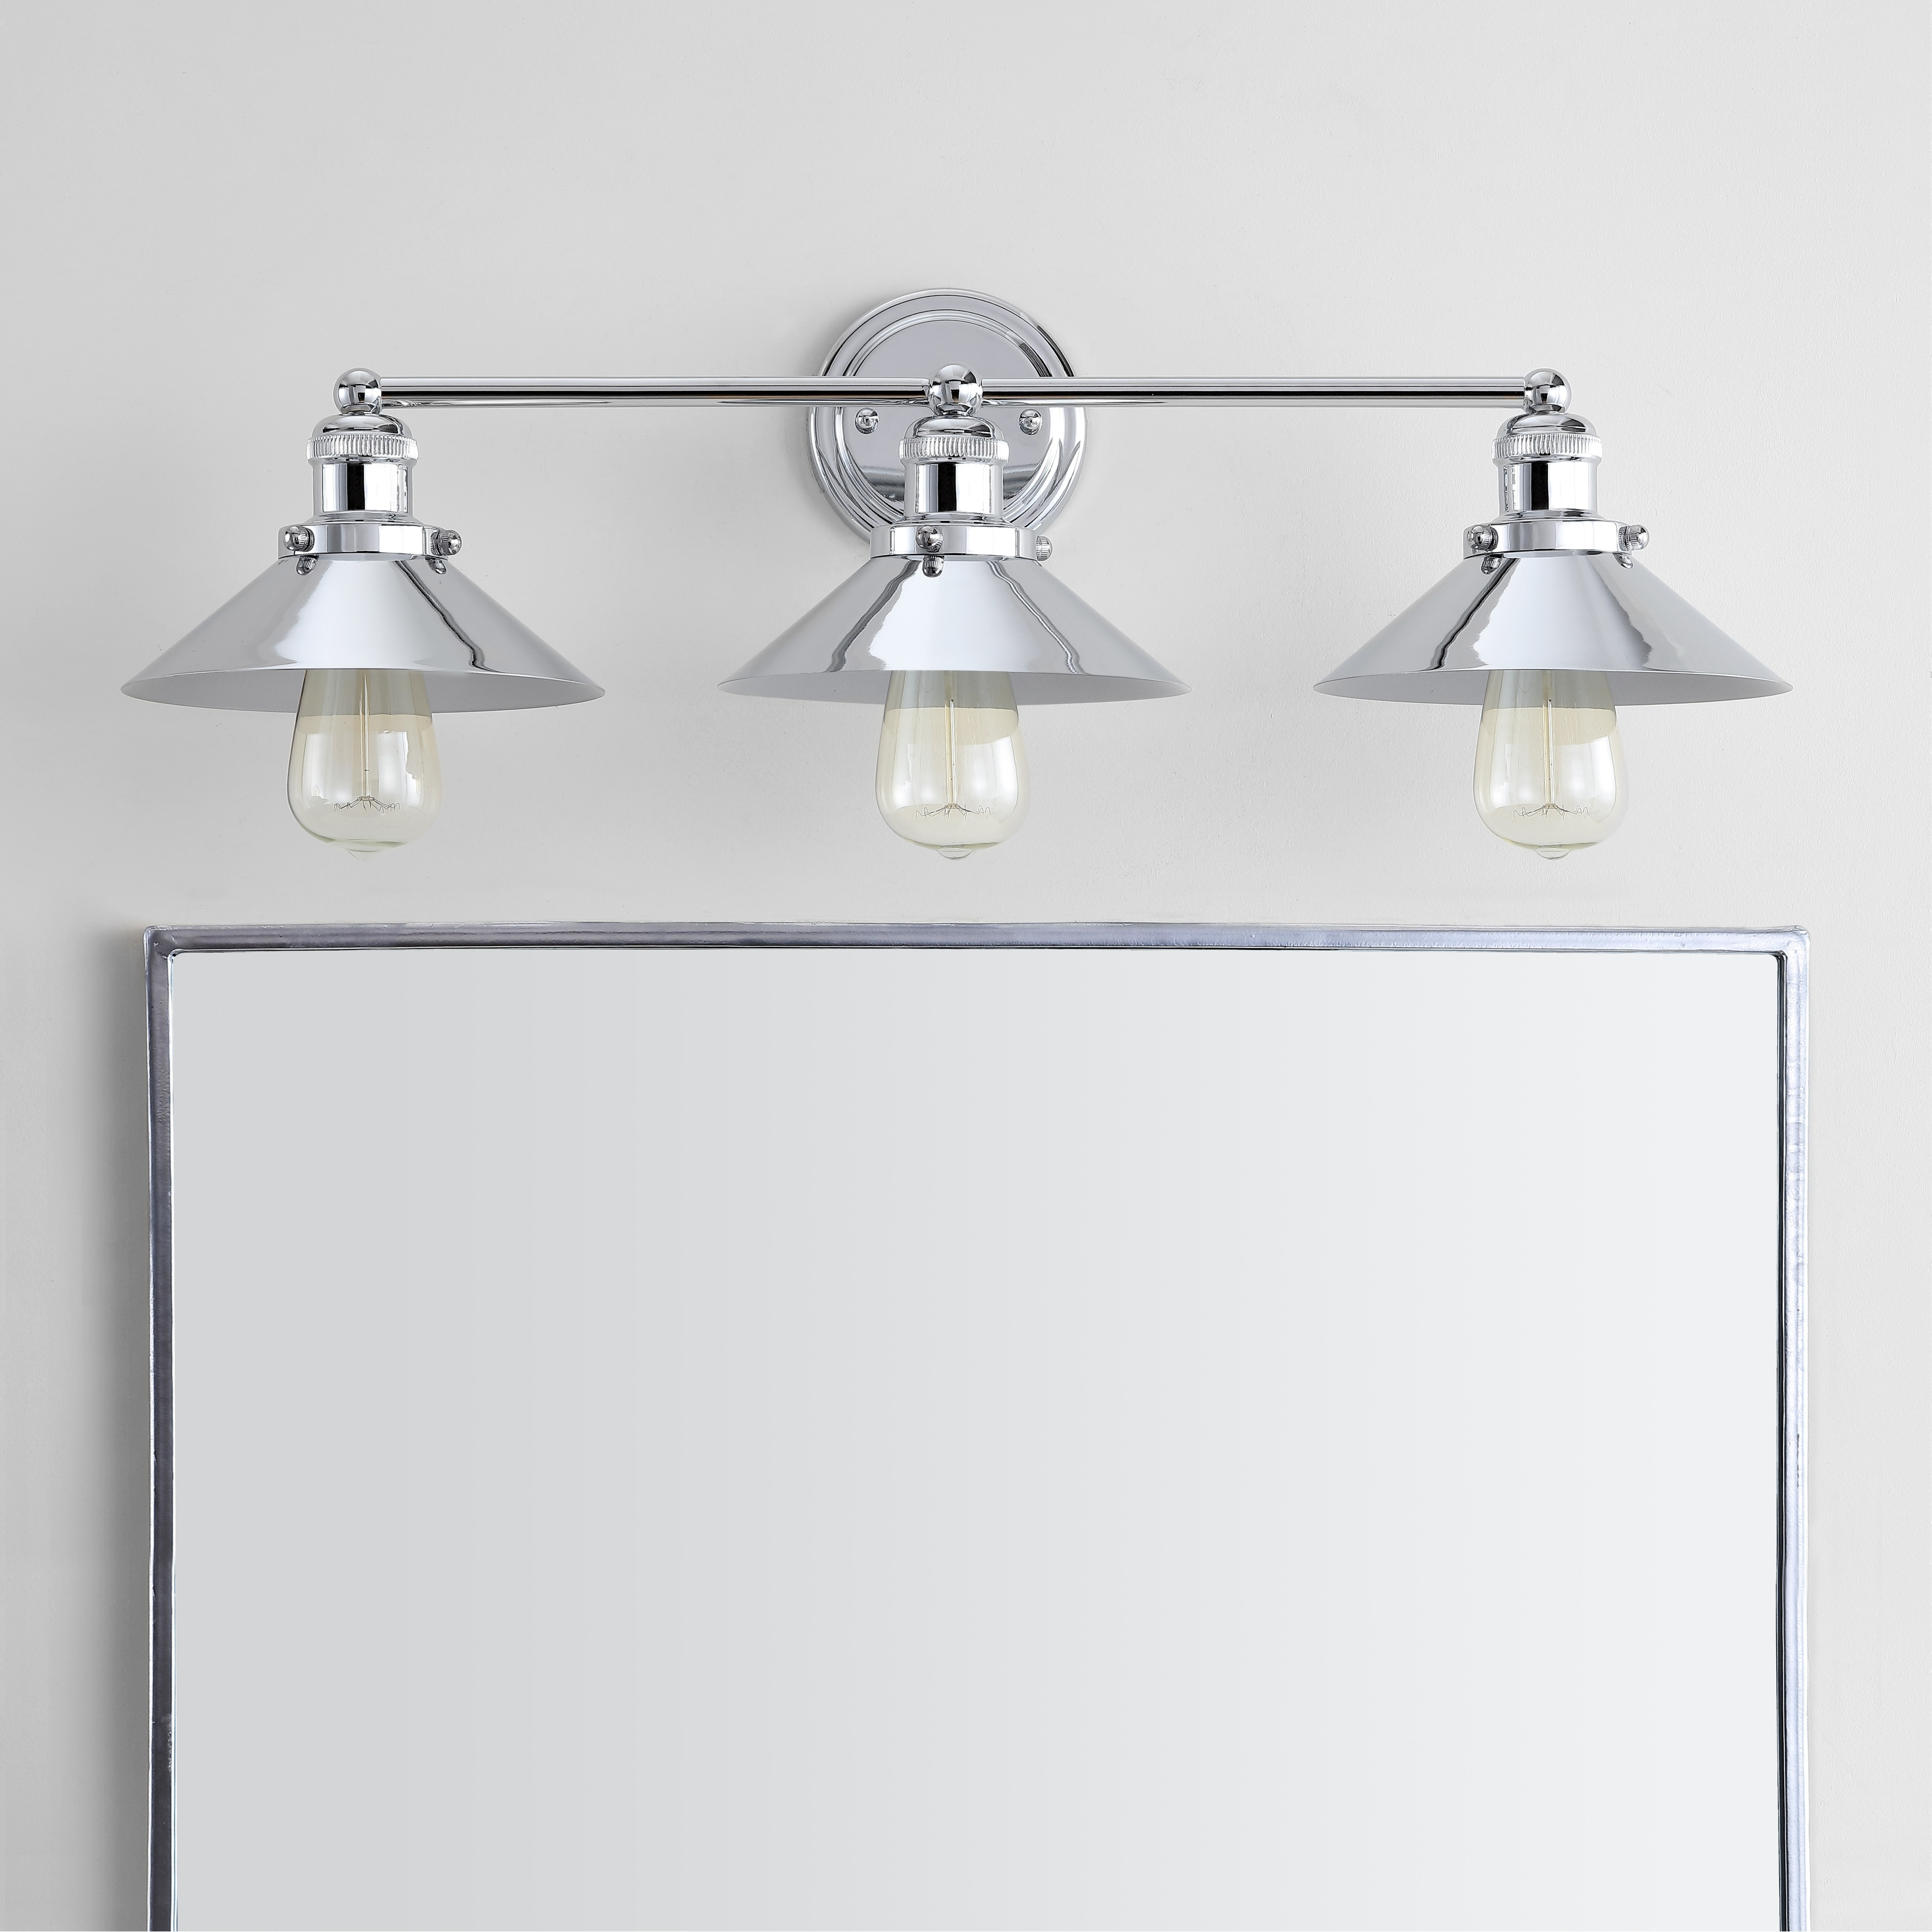 June 26 5 3 Light Metal Vanity Light Chrome By Jonathan Y Overstock 22848340